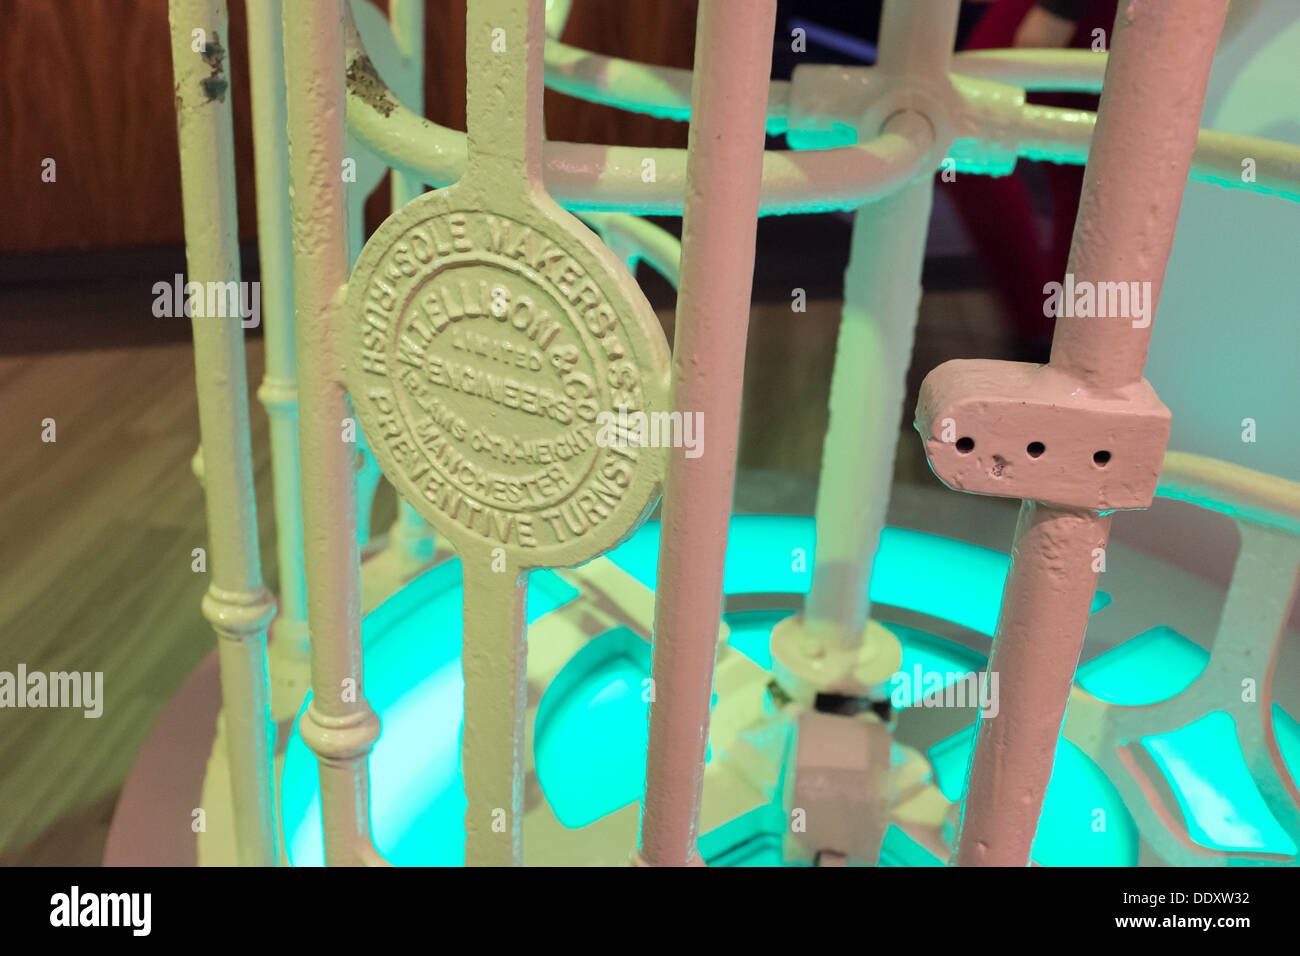 Details of turnstile in National Football Museum at Urbis in Manchester city centre, UK - Stock Image